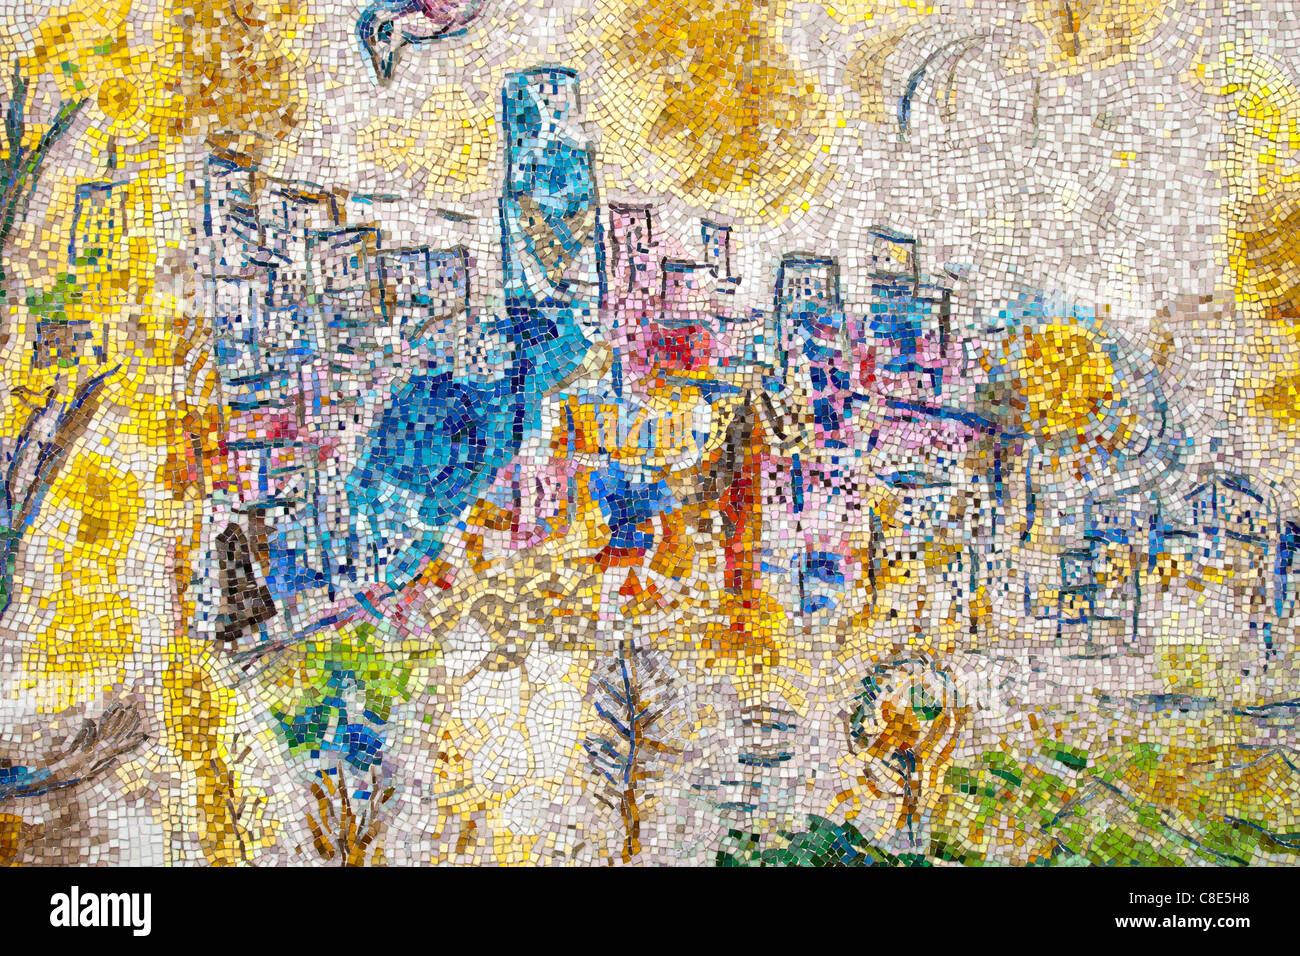 Four Seaons, Chagall mural, Chicago, Illinois - Stock Image